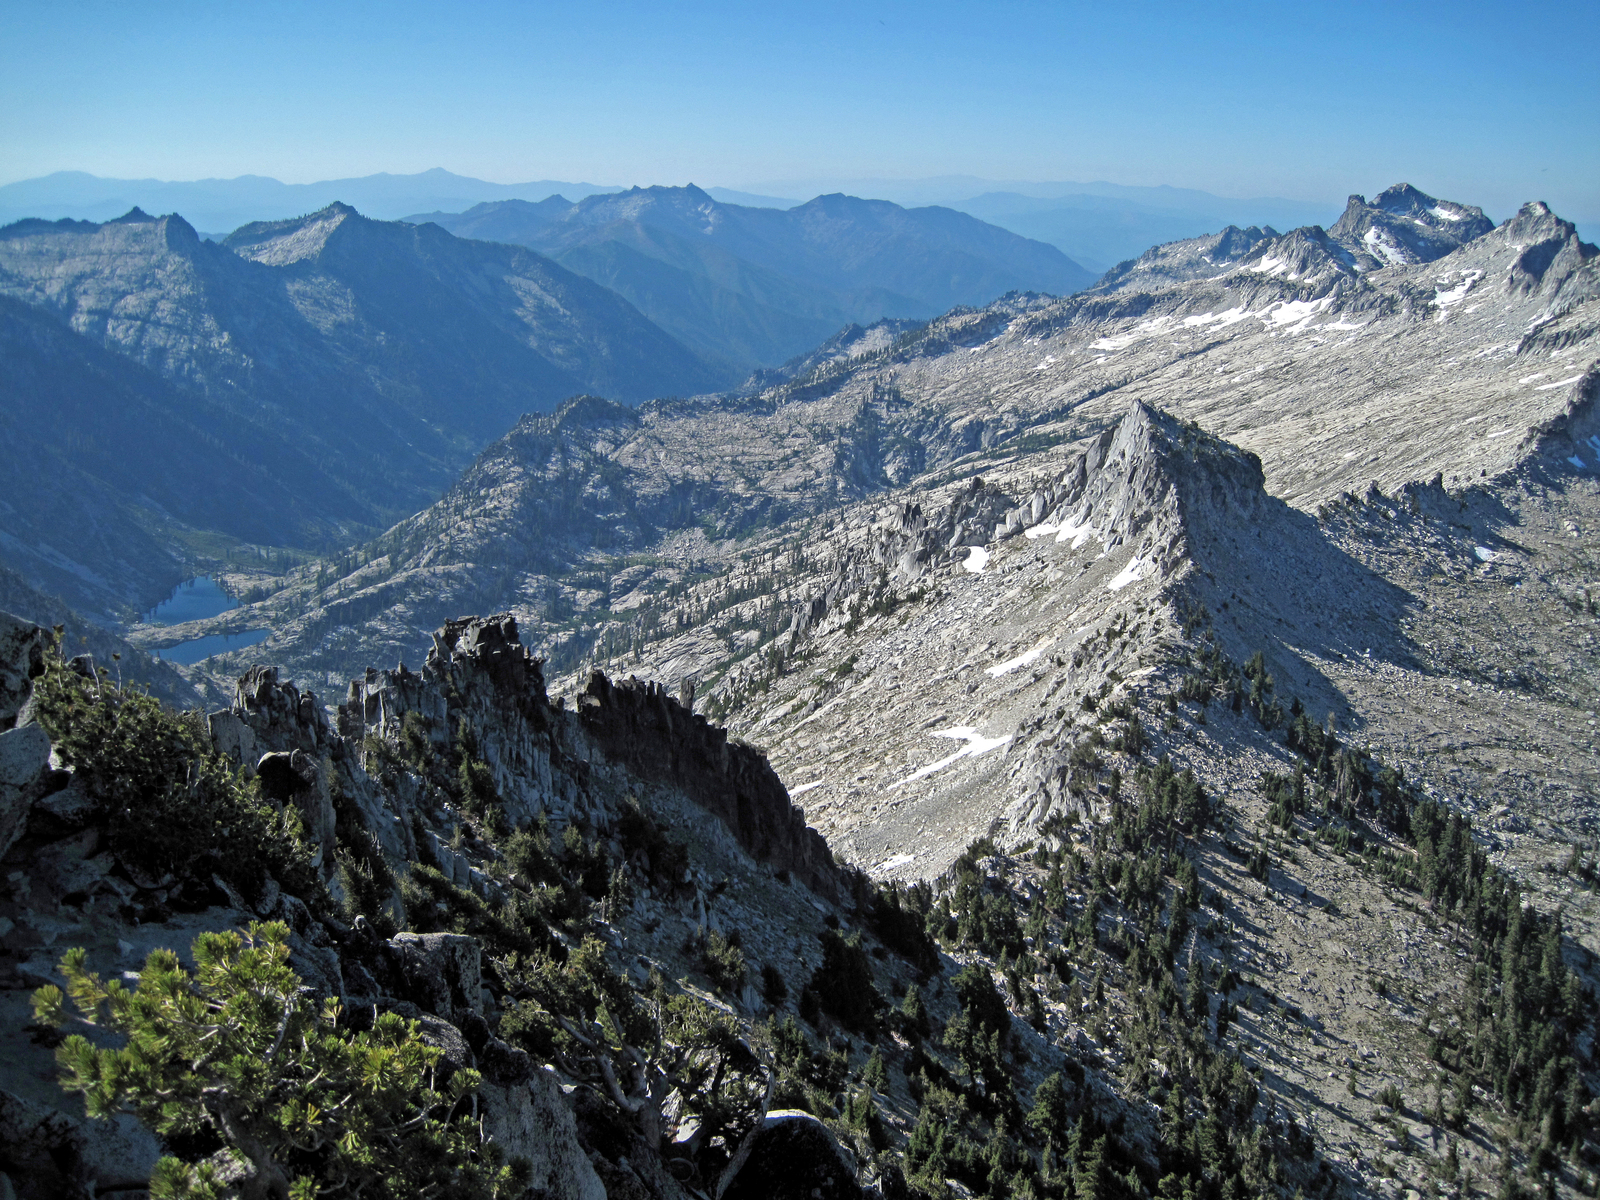 as seen from Mt. Thompson, Trinity Alps, Northern California